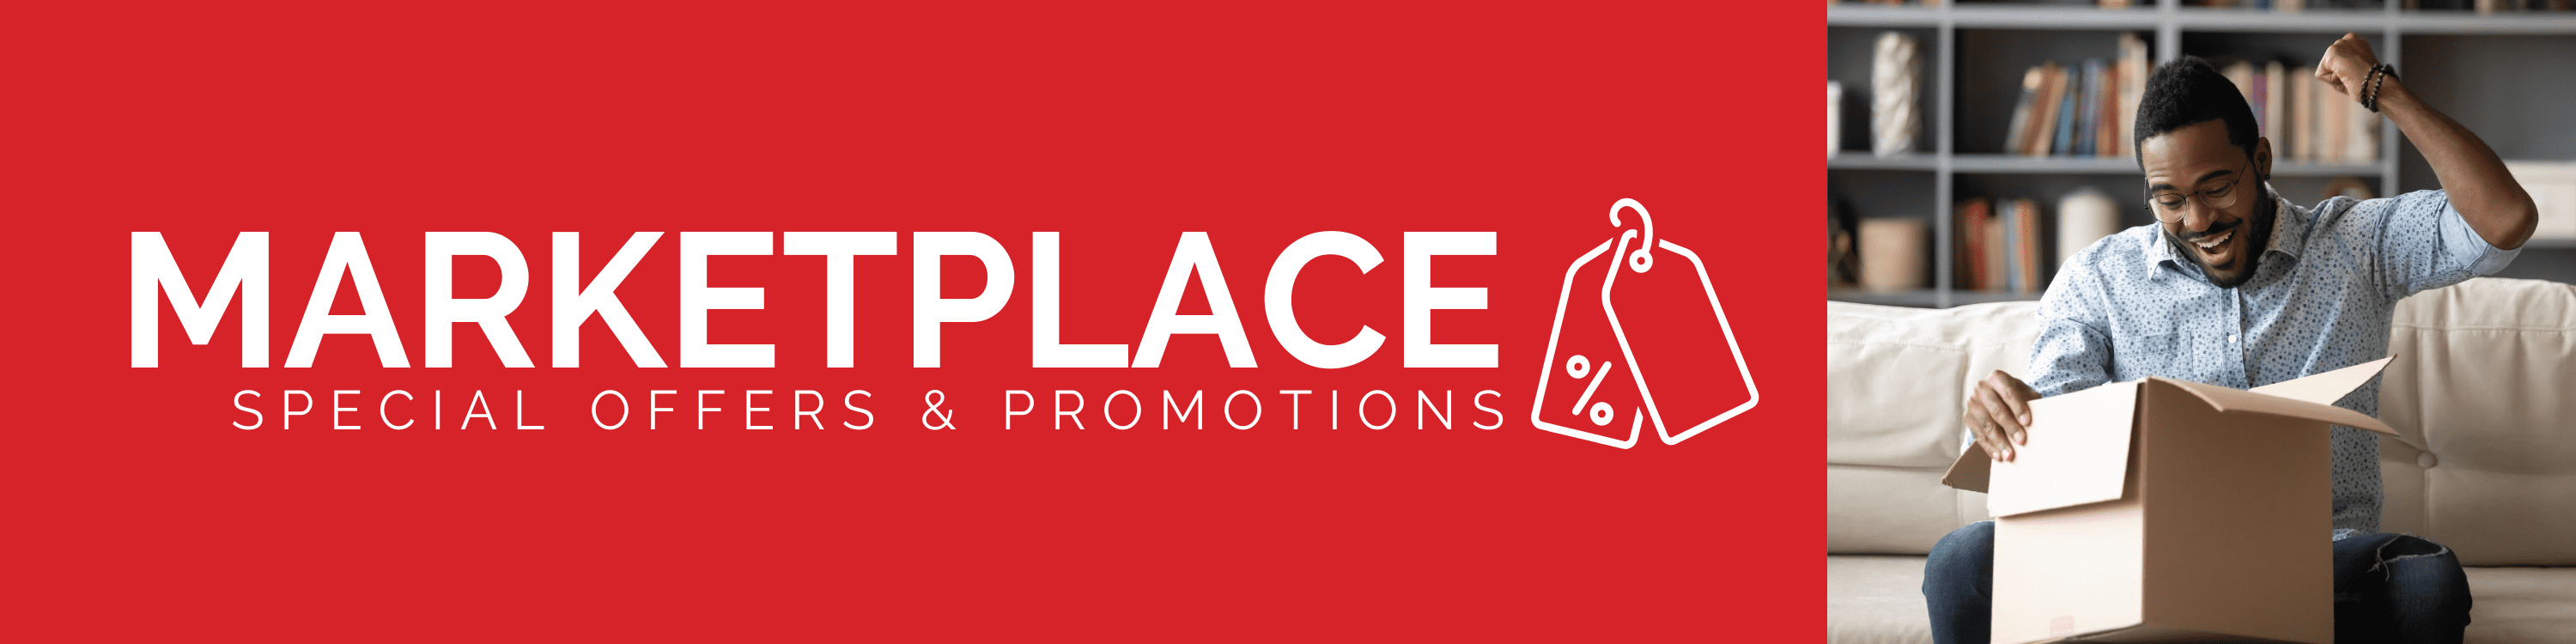 MyOfficeInnovations Marketplace Special Offers & Promotions Header